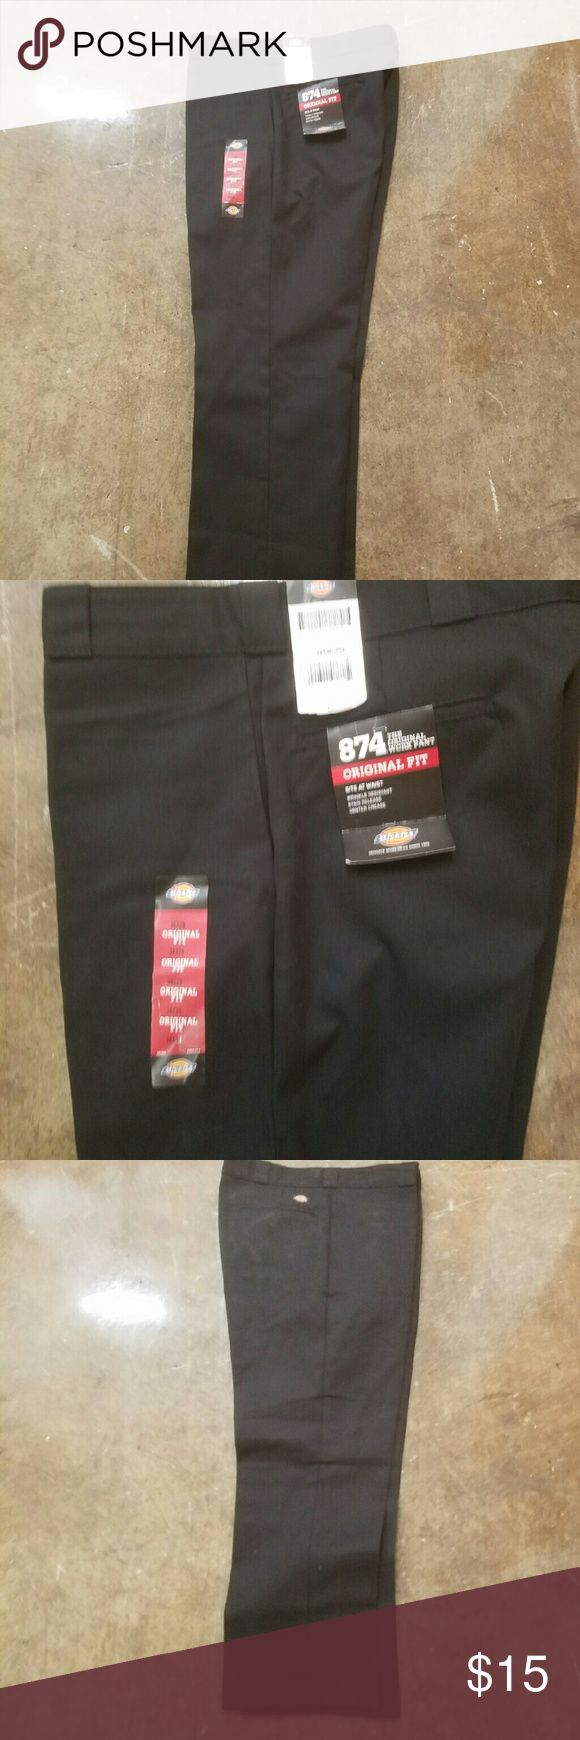 Dickies Brand new Dickies men's pants size 38 29 brand new never worn still have the tags. Dickies Pants Chinos & Khakis